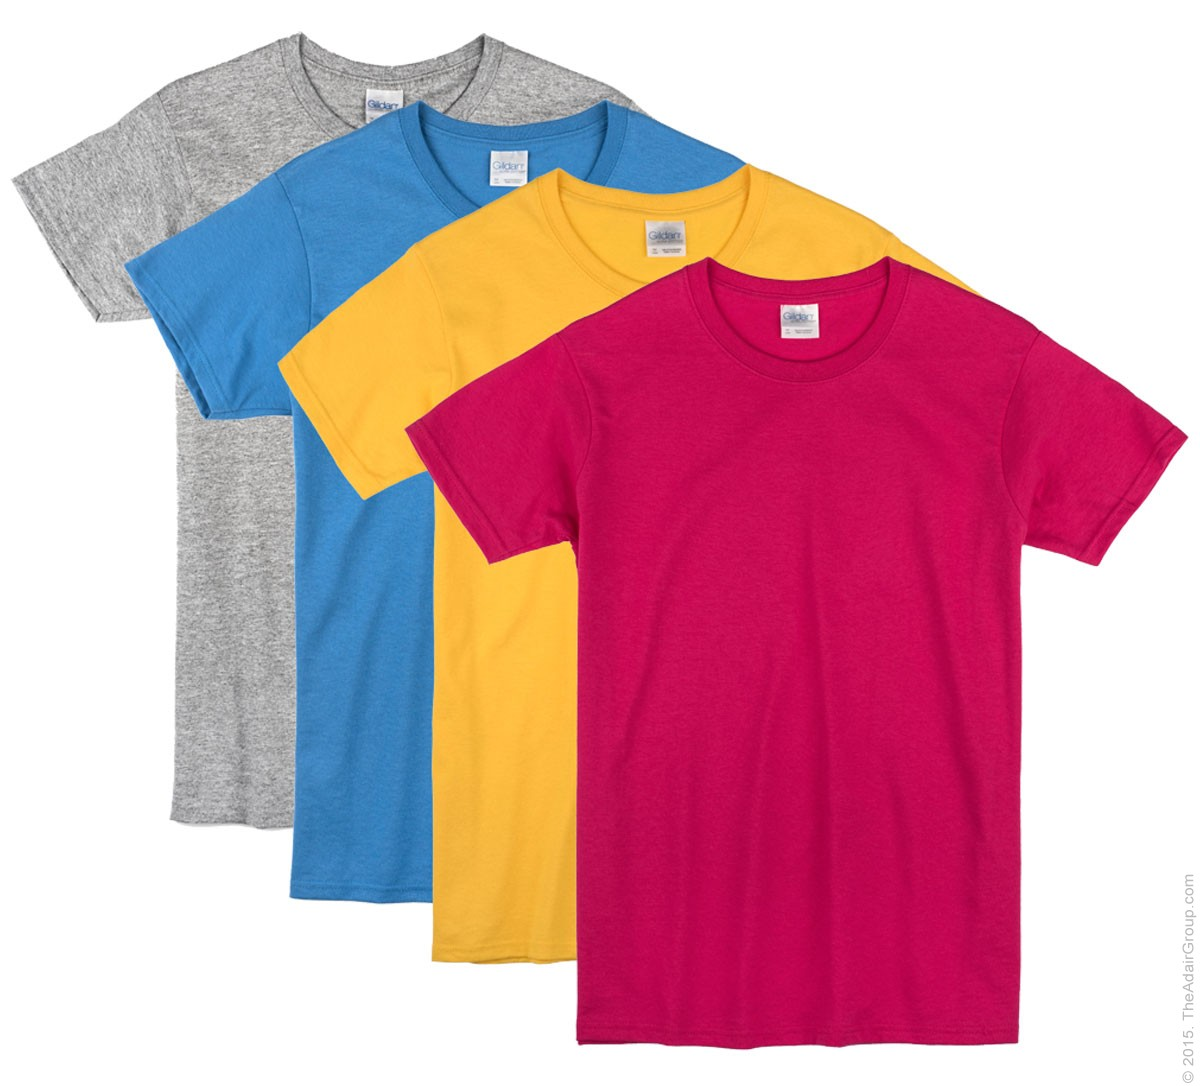 Wholesale tee shirts artee shirt for T shirt printing in bulk